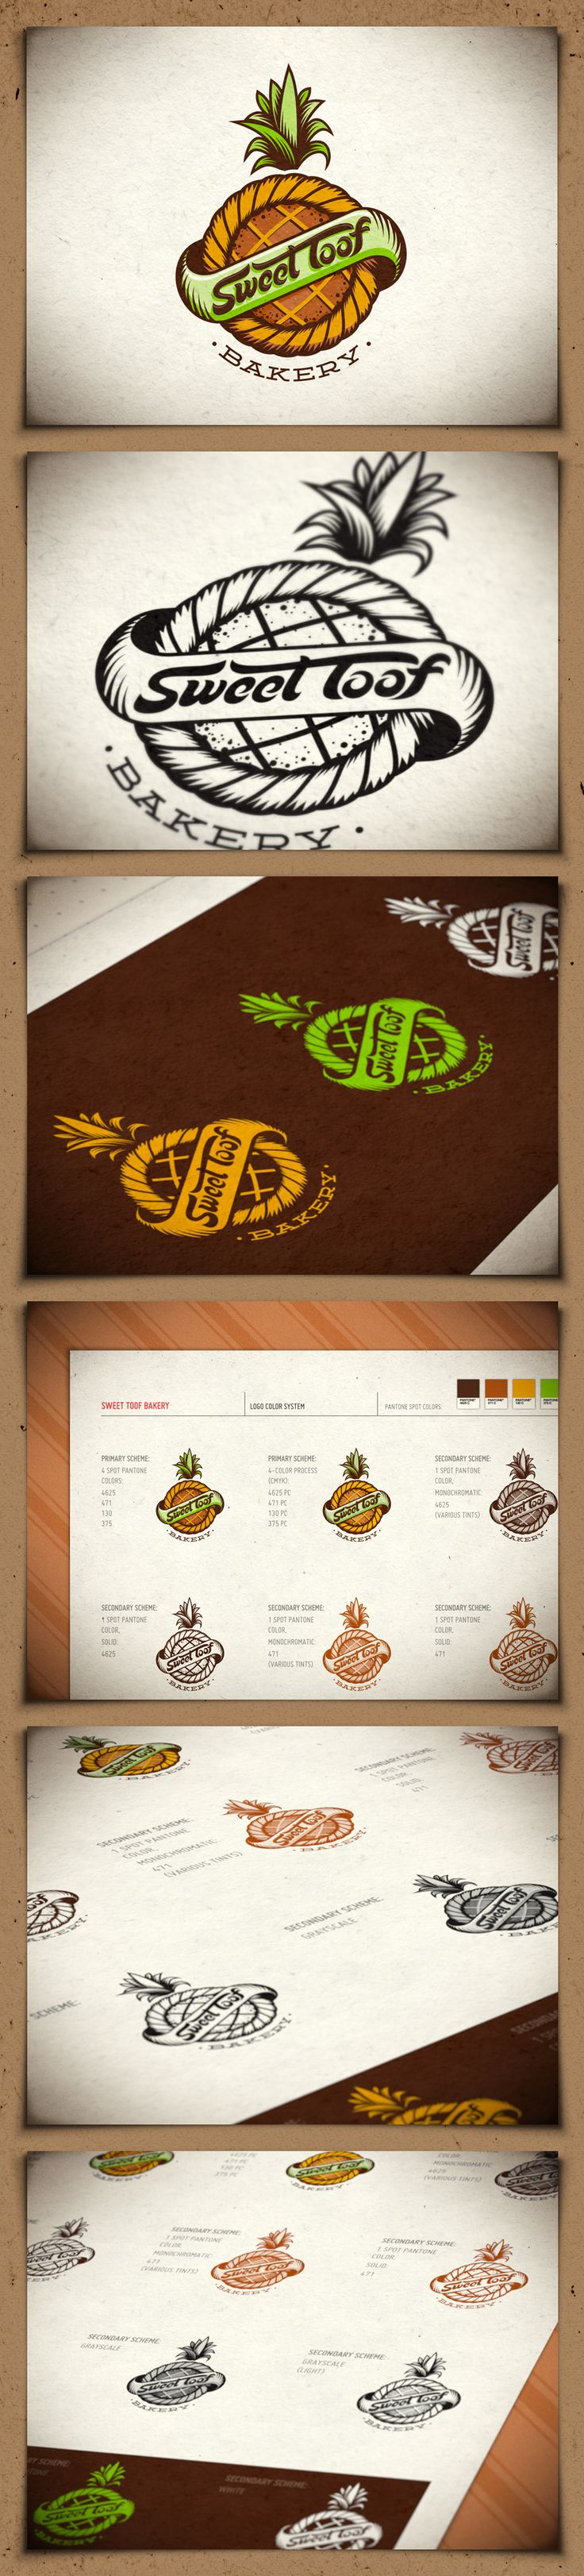 Sweet Toof bakery identity - FINAL. Really like this logo a lot. Creative, simple very nice.